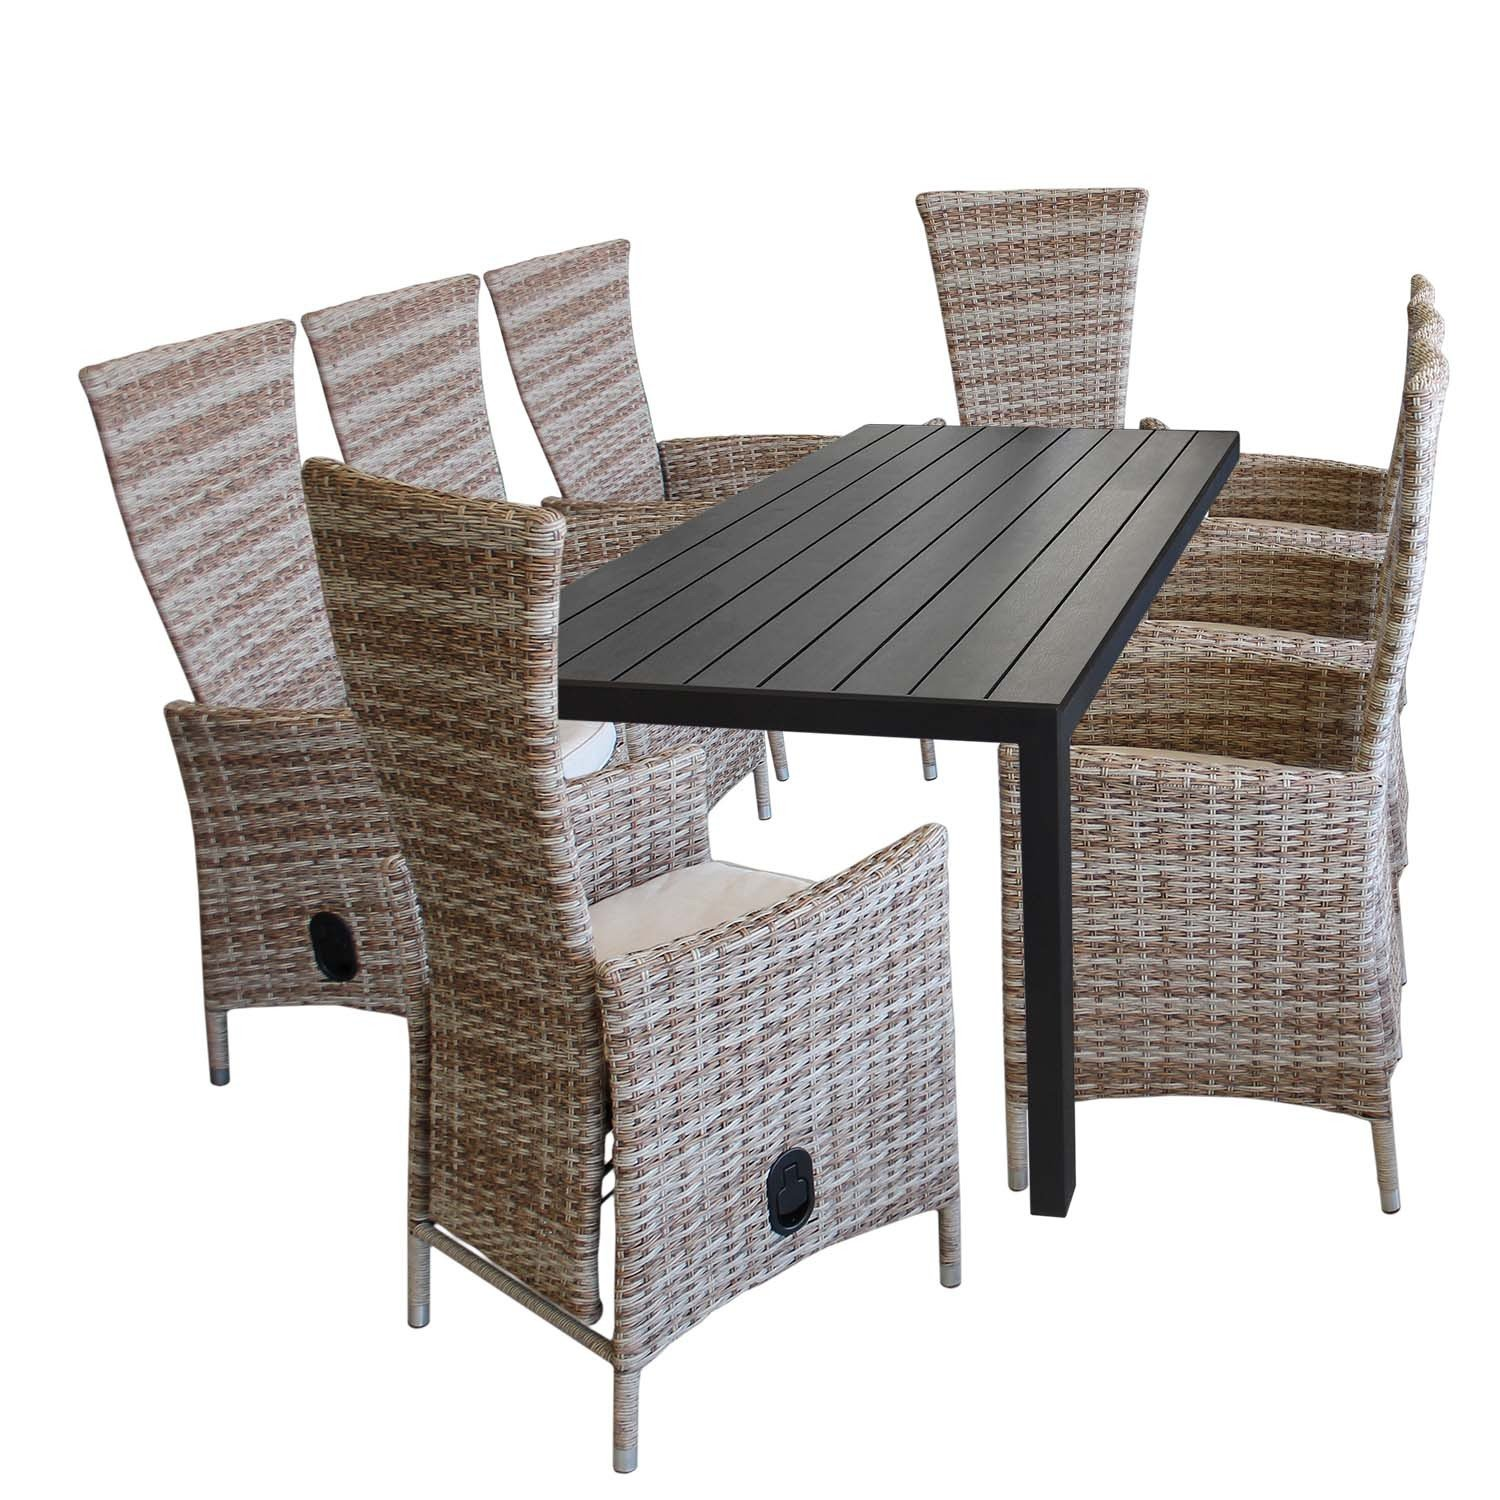 9tlg gartenm bel set aluminium polywood gartentisch 205x90cm 8x gartensessel polyrattan. Black Bedroom Furniture Sets. Home Design Ideas